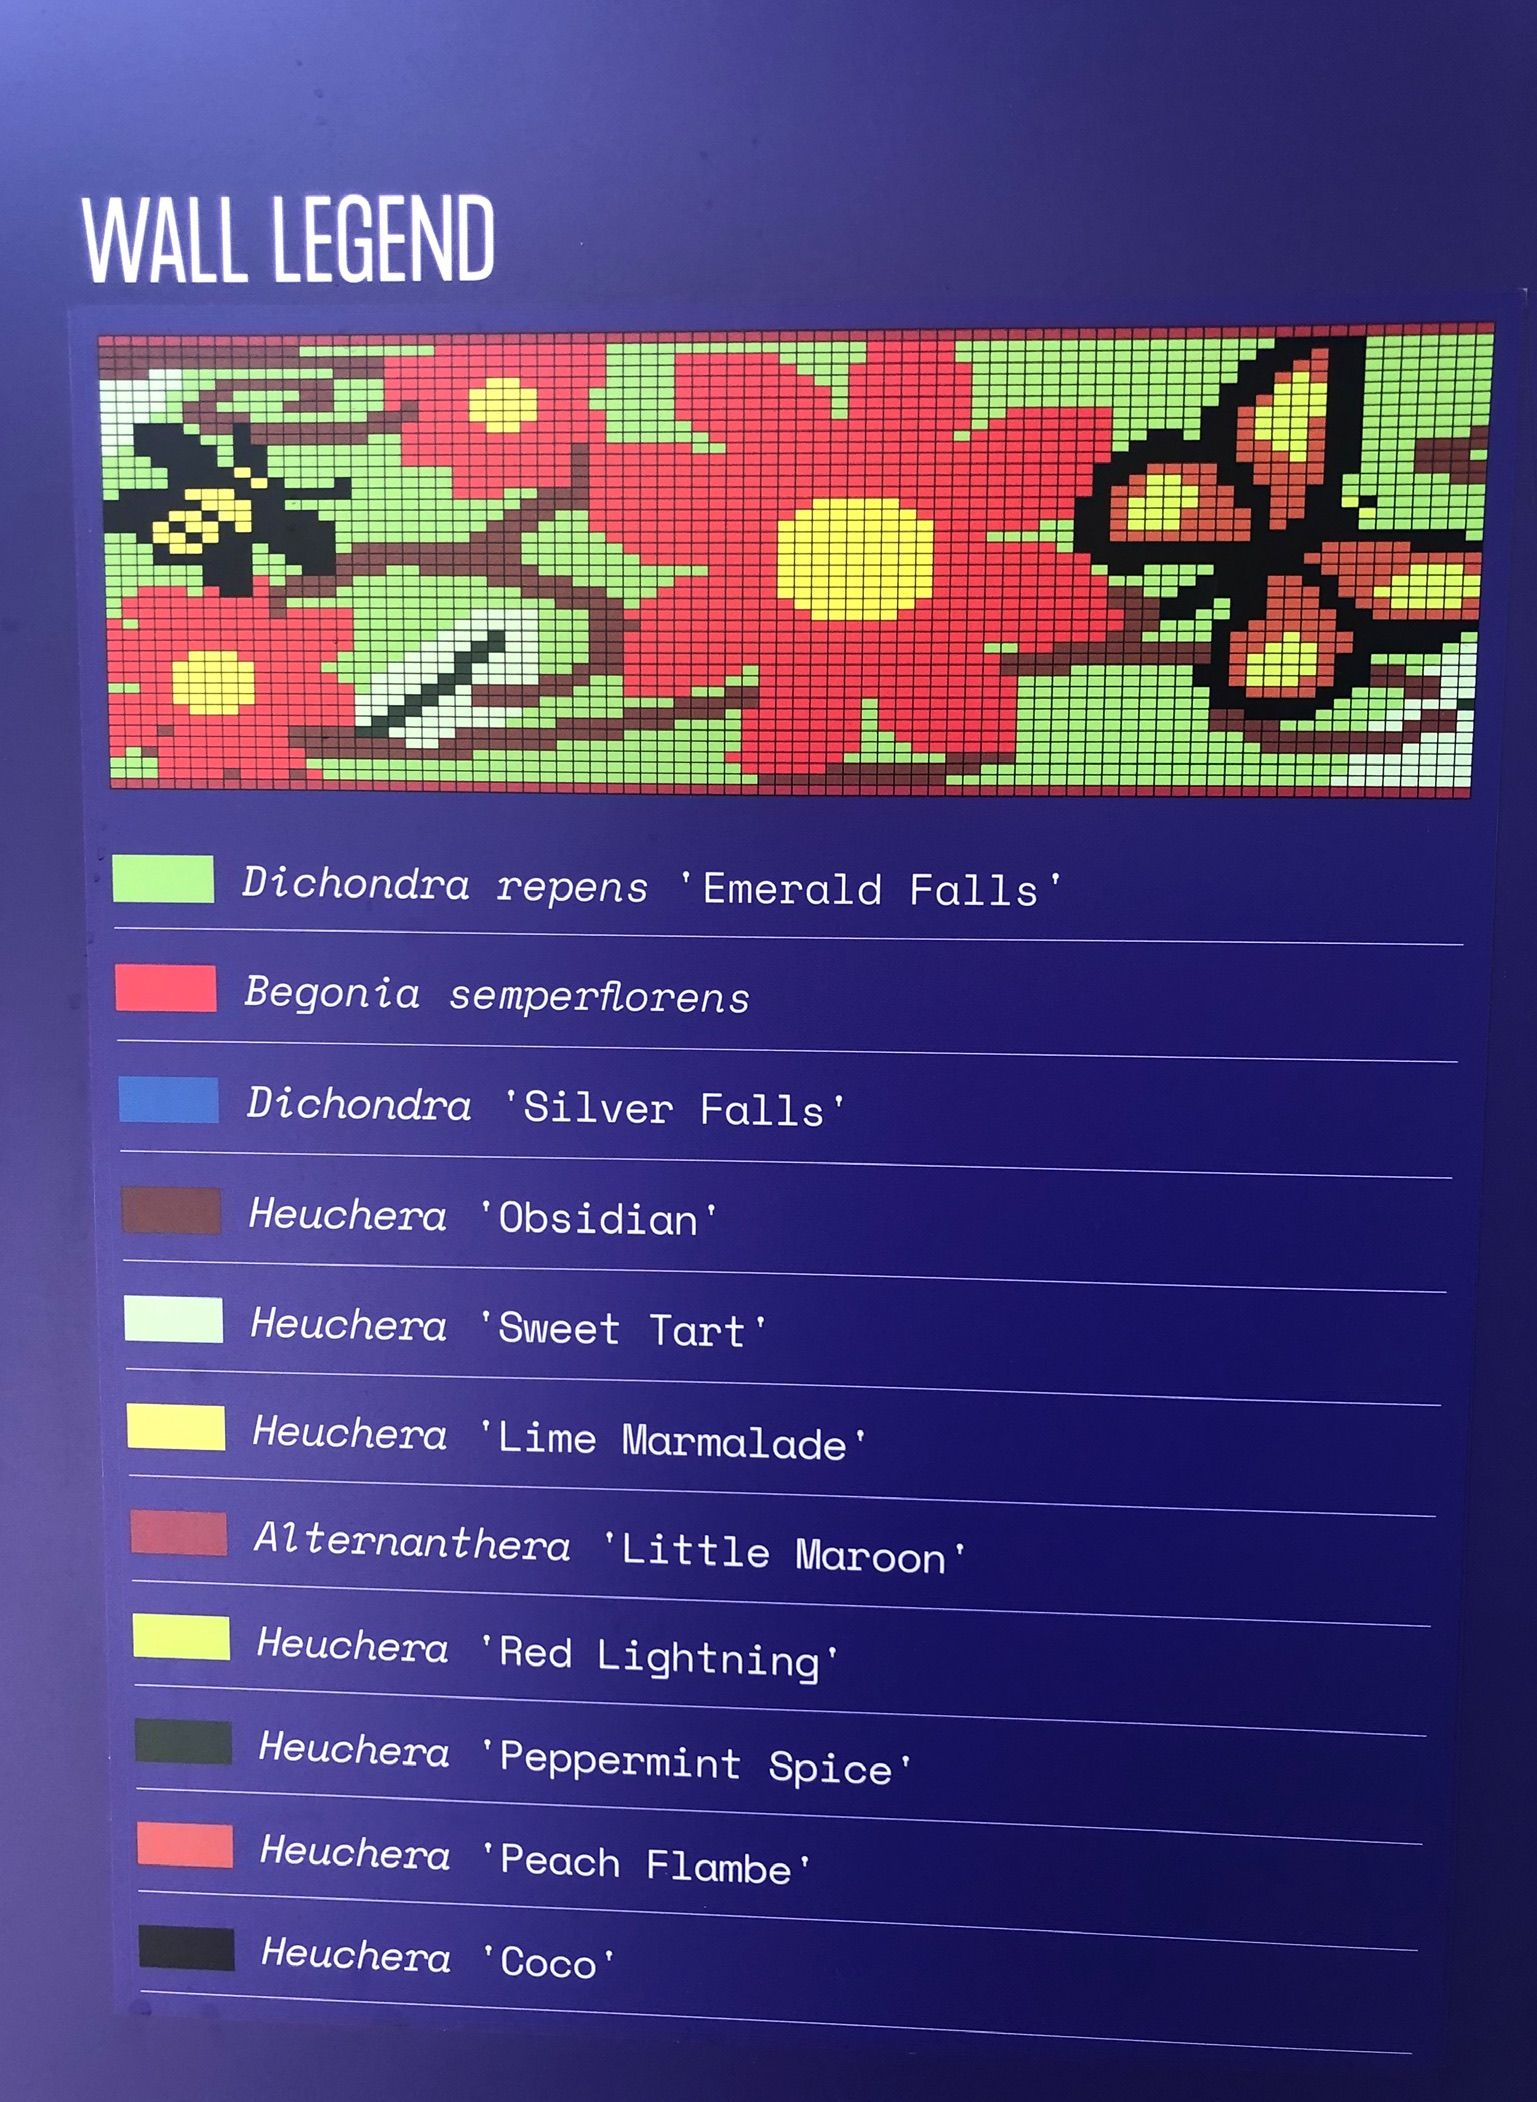 Wall chart showing the overall design and plantings